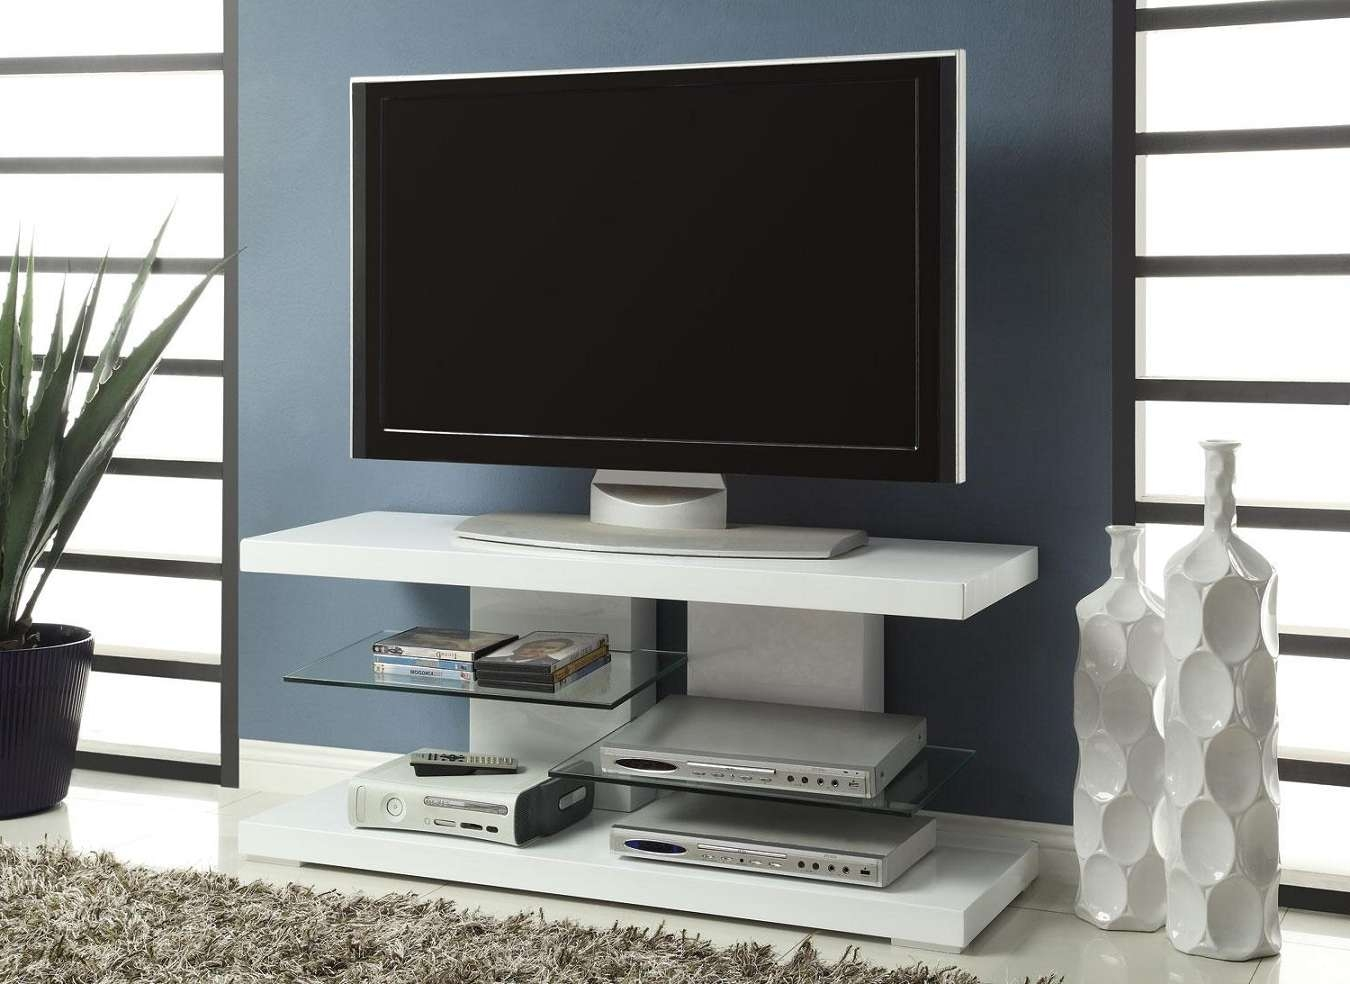 Black Painted Oak Wood Wide Screen Tv Stand Mixed Light Blue Wall Pertaining To Wide Screen Tv Stands (View 14 of 15)